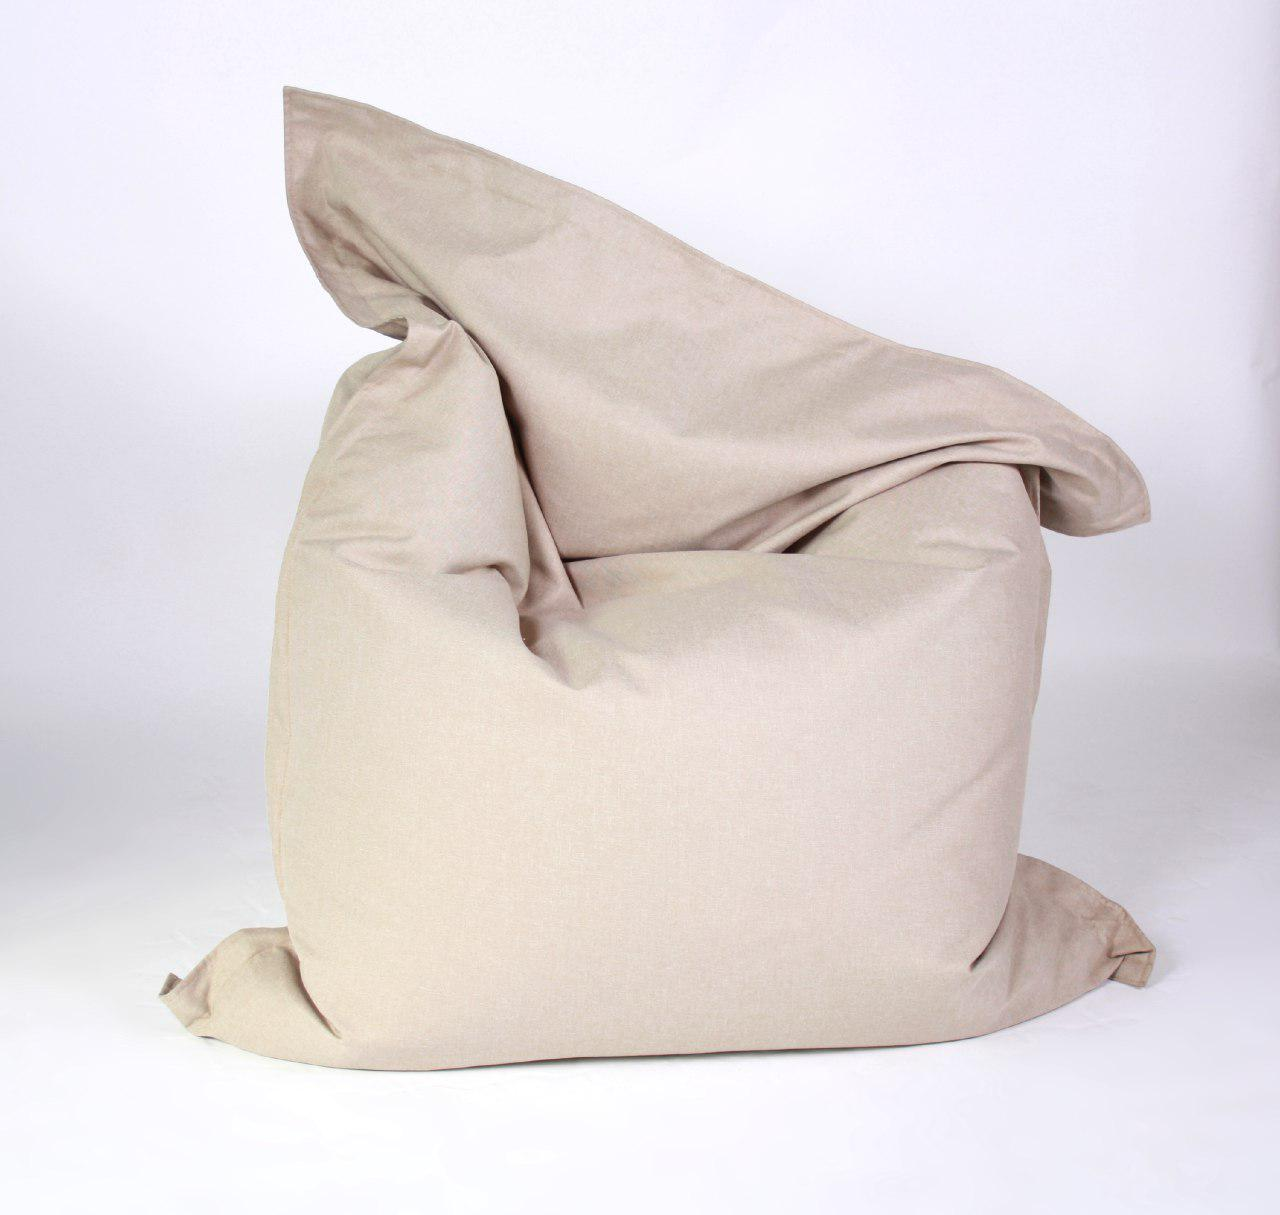 Sitzsack Indoor Savana 180 X 140 Cm Supersack De